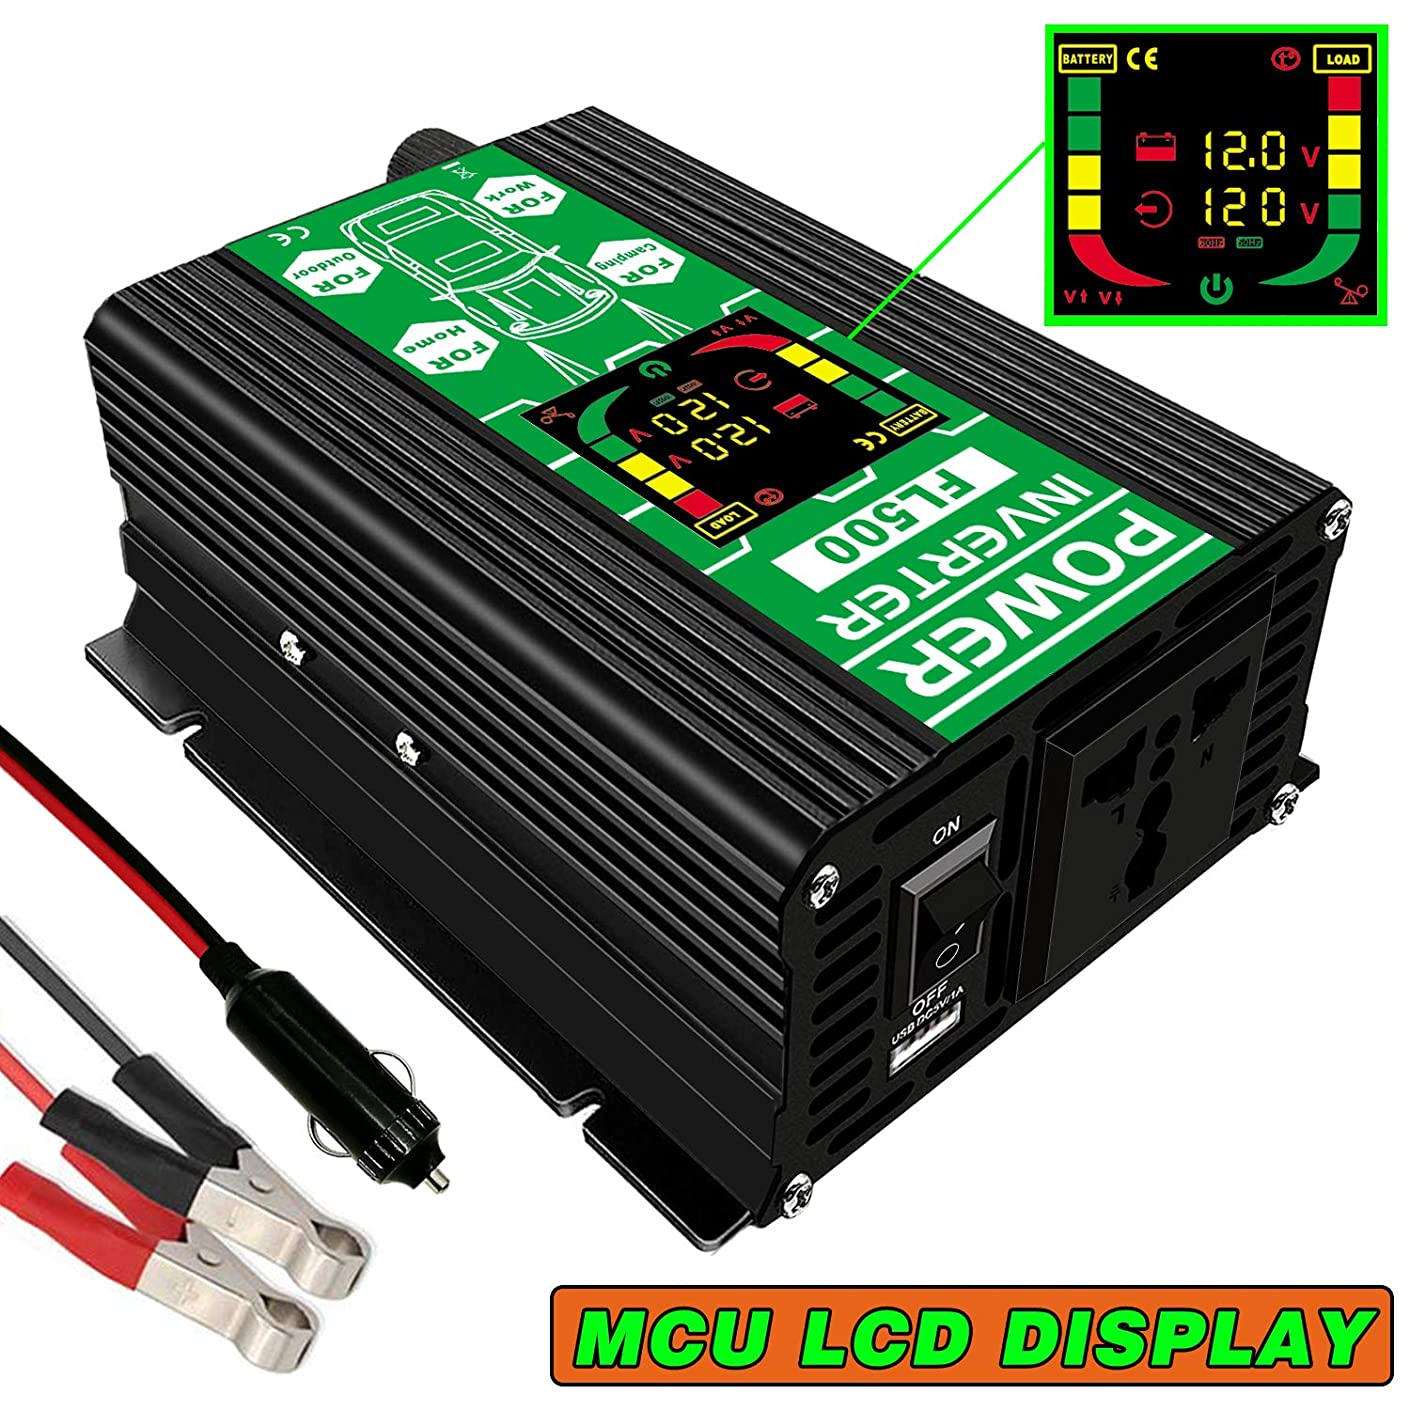 FULAI 300W Car Power Inverter, DC 12V to 110V AC Car Converter with LCD Display Screen and USB Port Charger Car Adapter